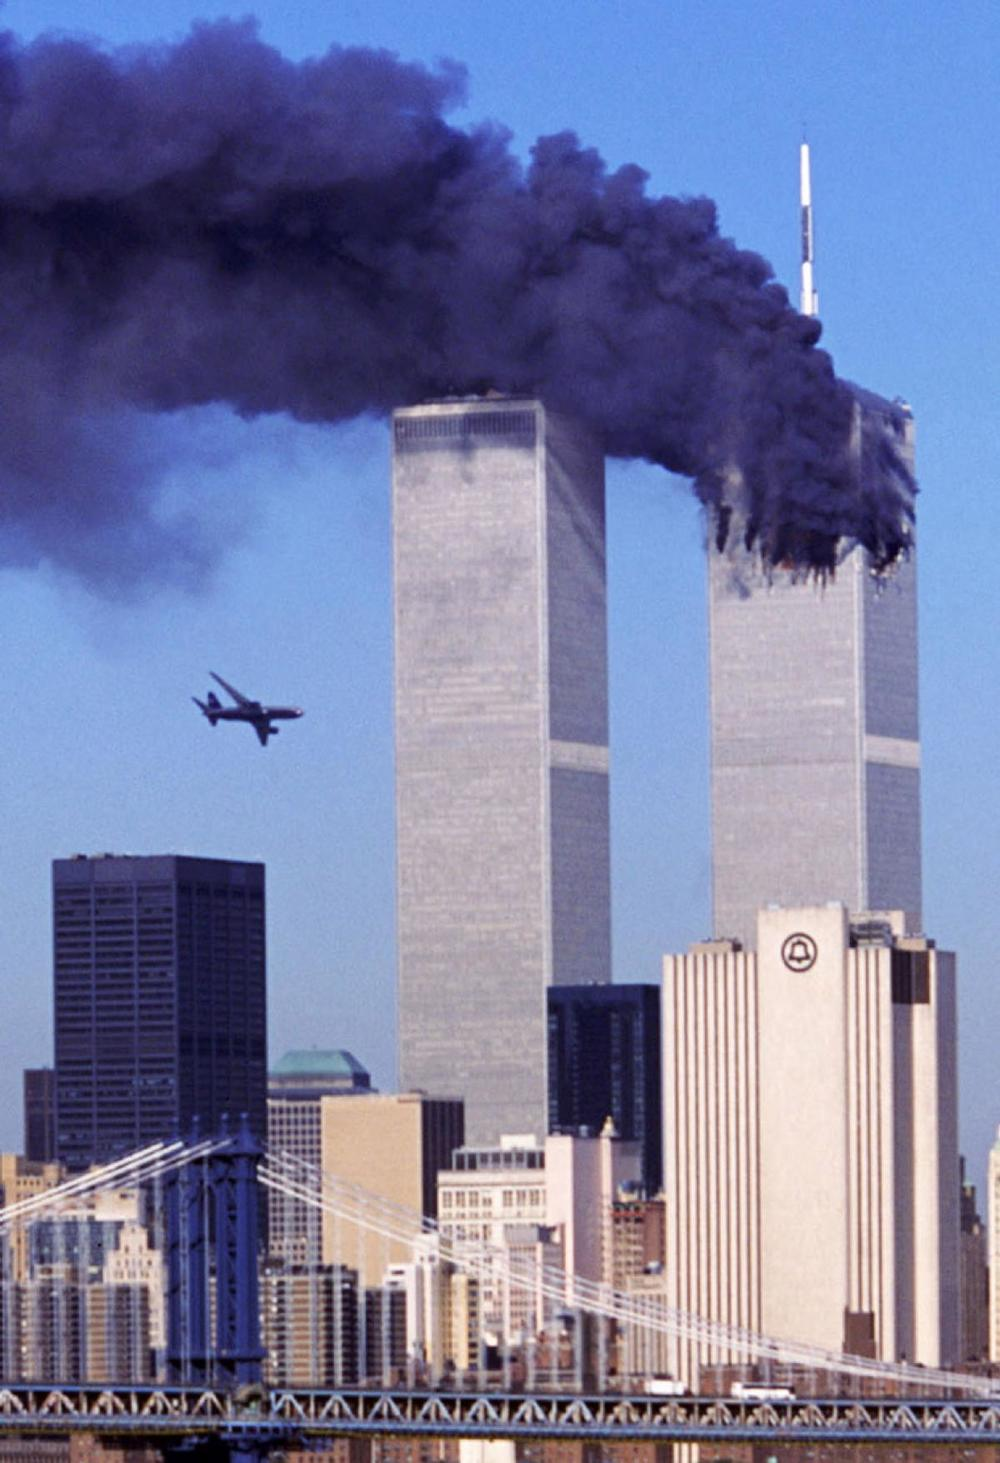 Flight 175 before crashing into the South Tower at the World Trade Center